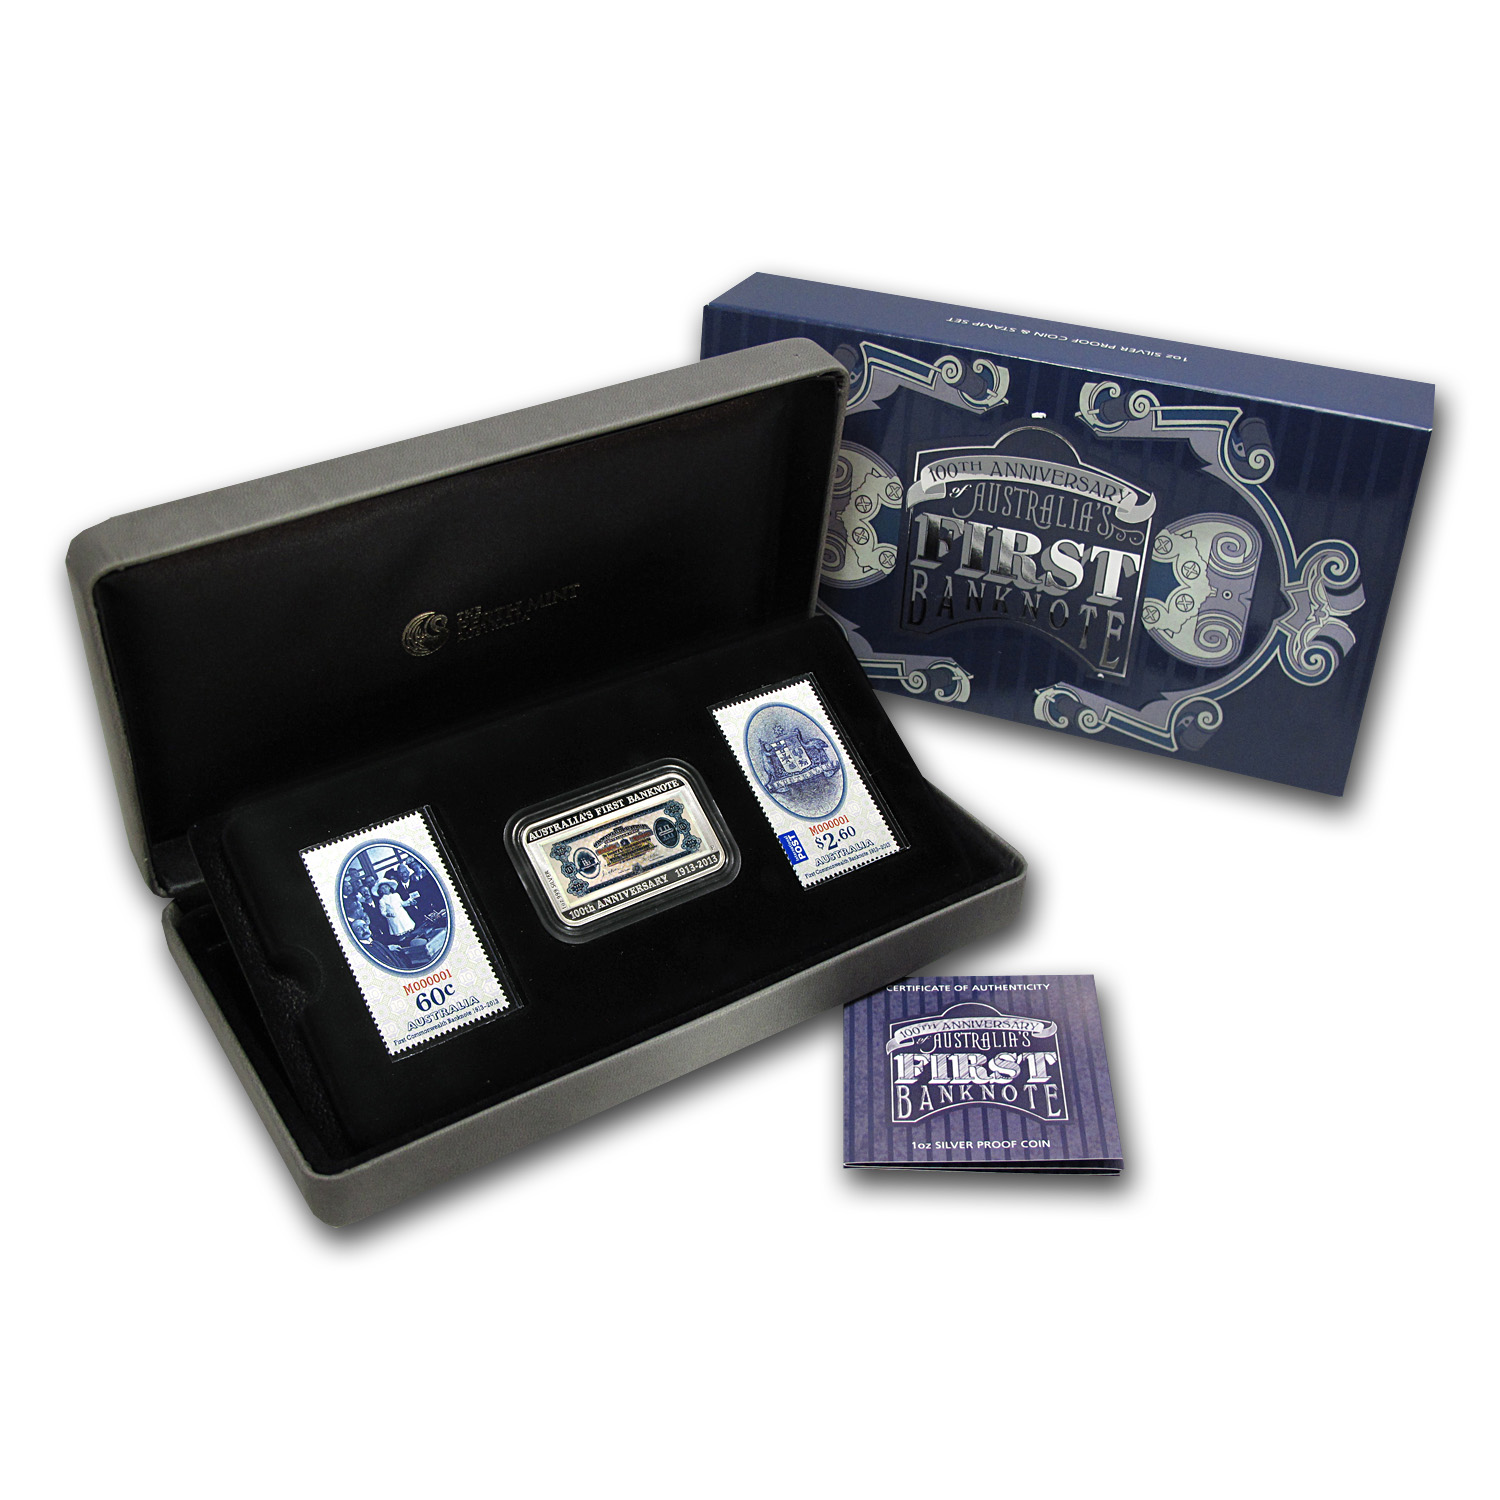 2013 1 oz Proof Silver Australian Banknote & Stamp Set